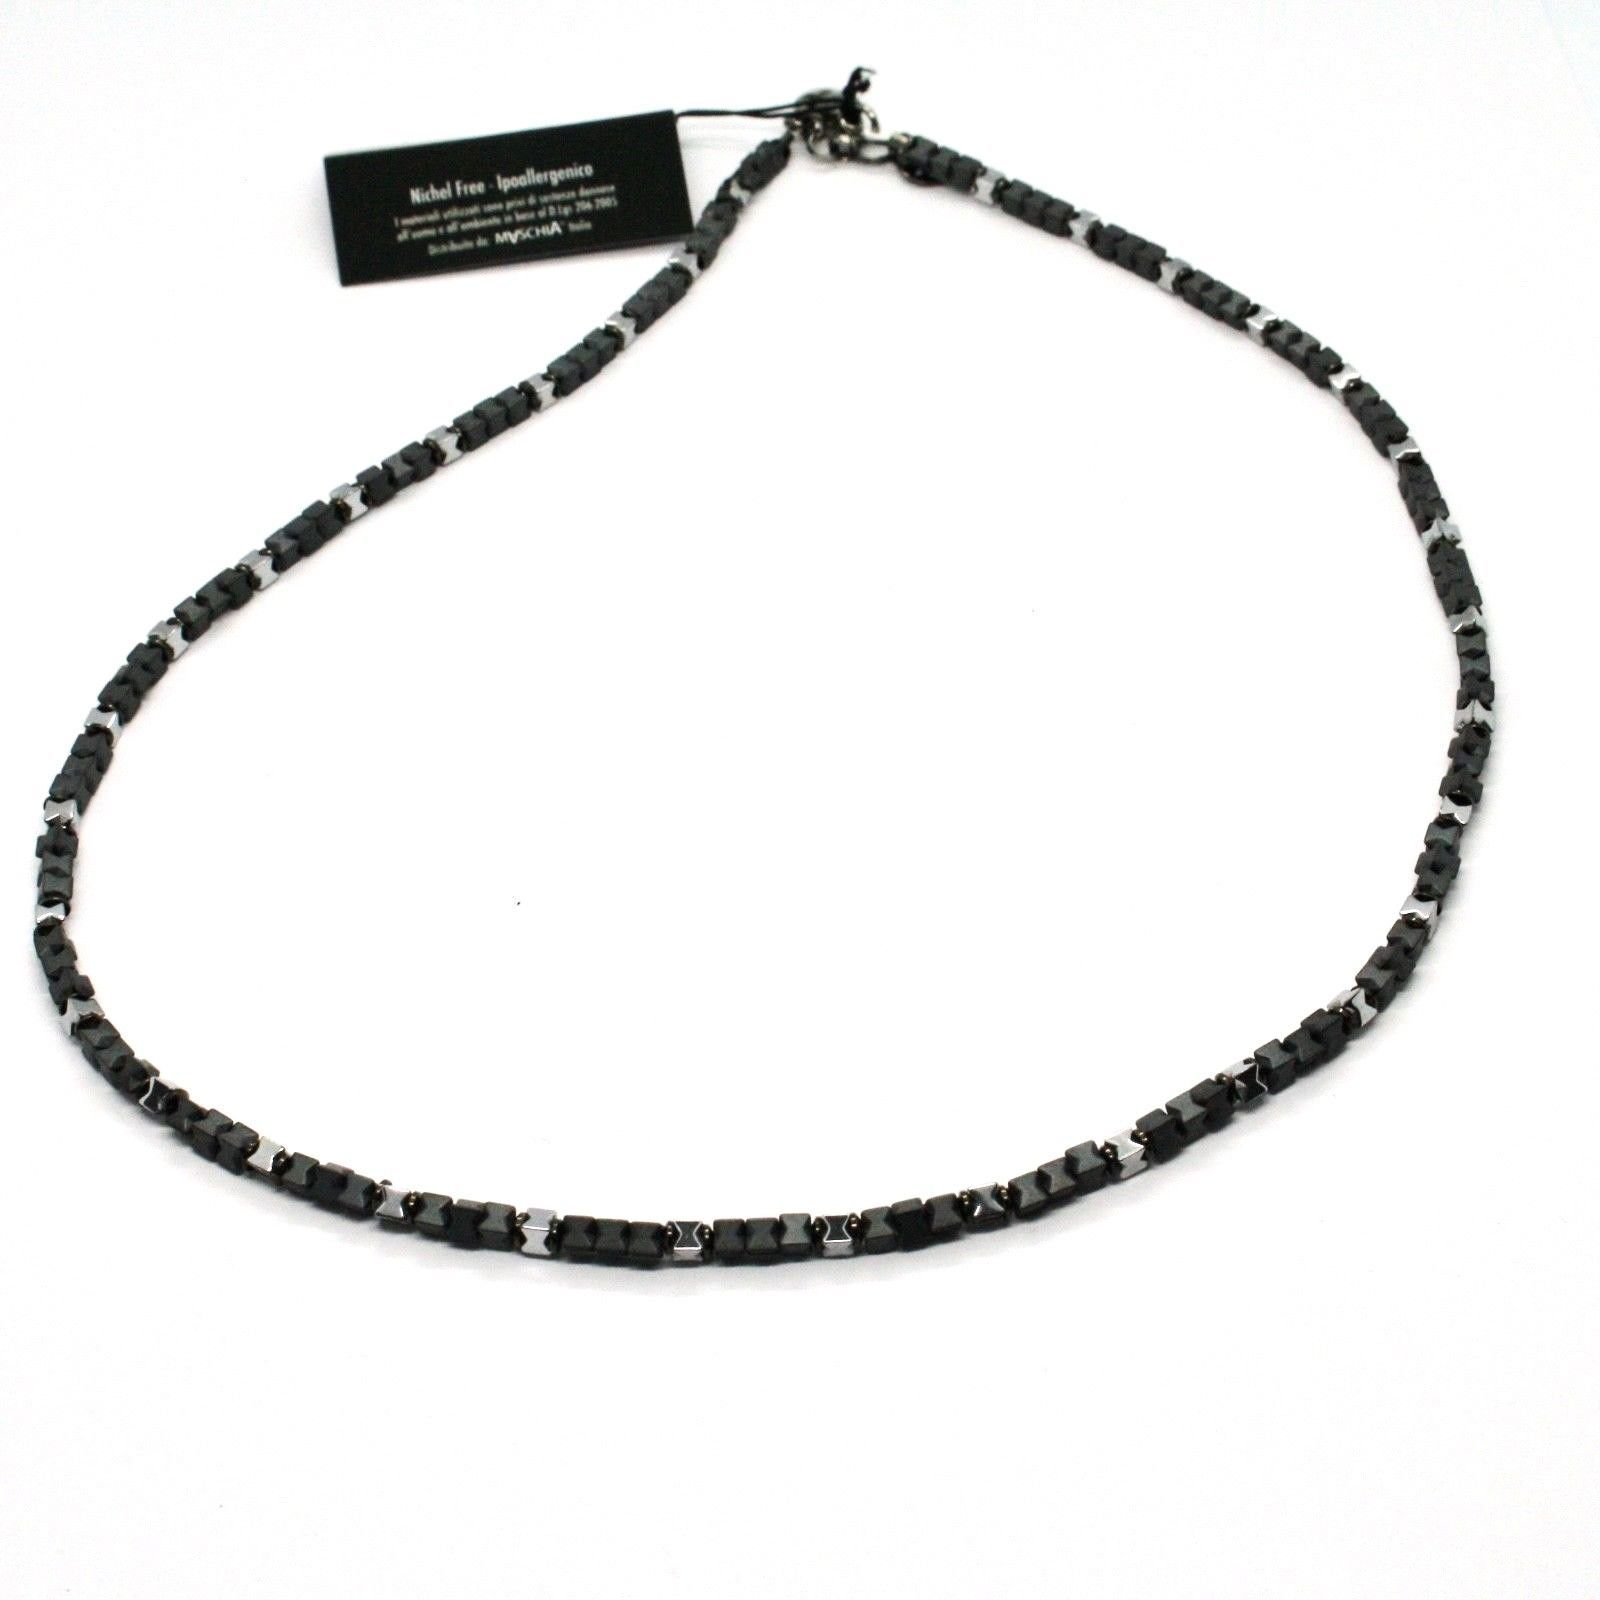 925 STERLING SILVER NECKLACE BURNISHED WITH HEMATITE GLOSSY MADE IN ITALY BY